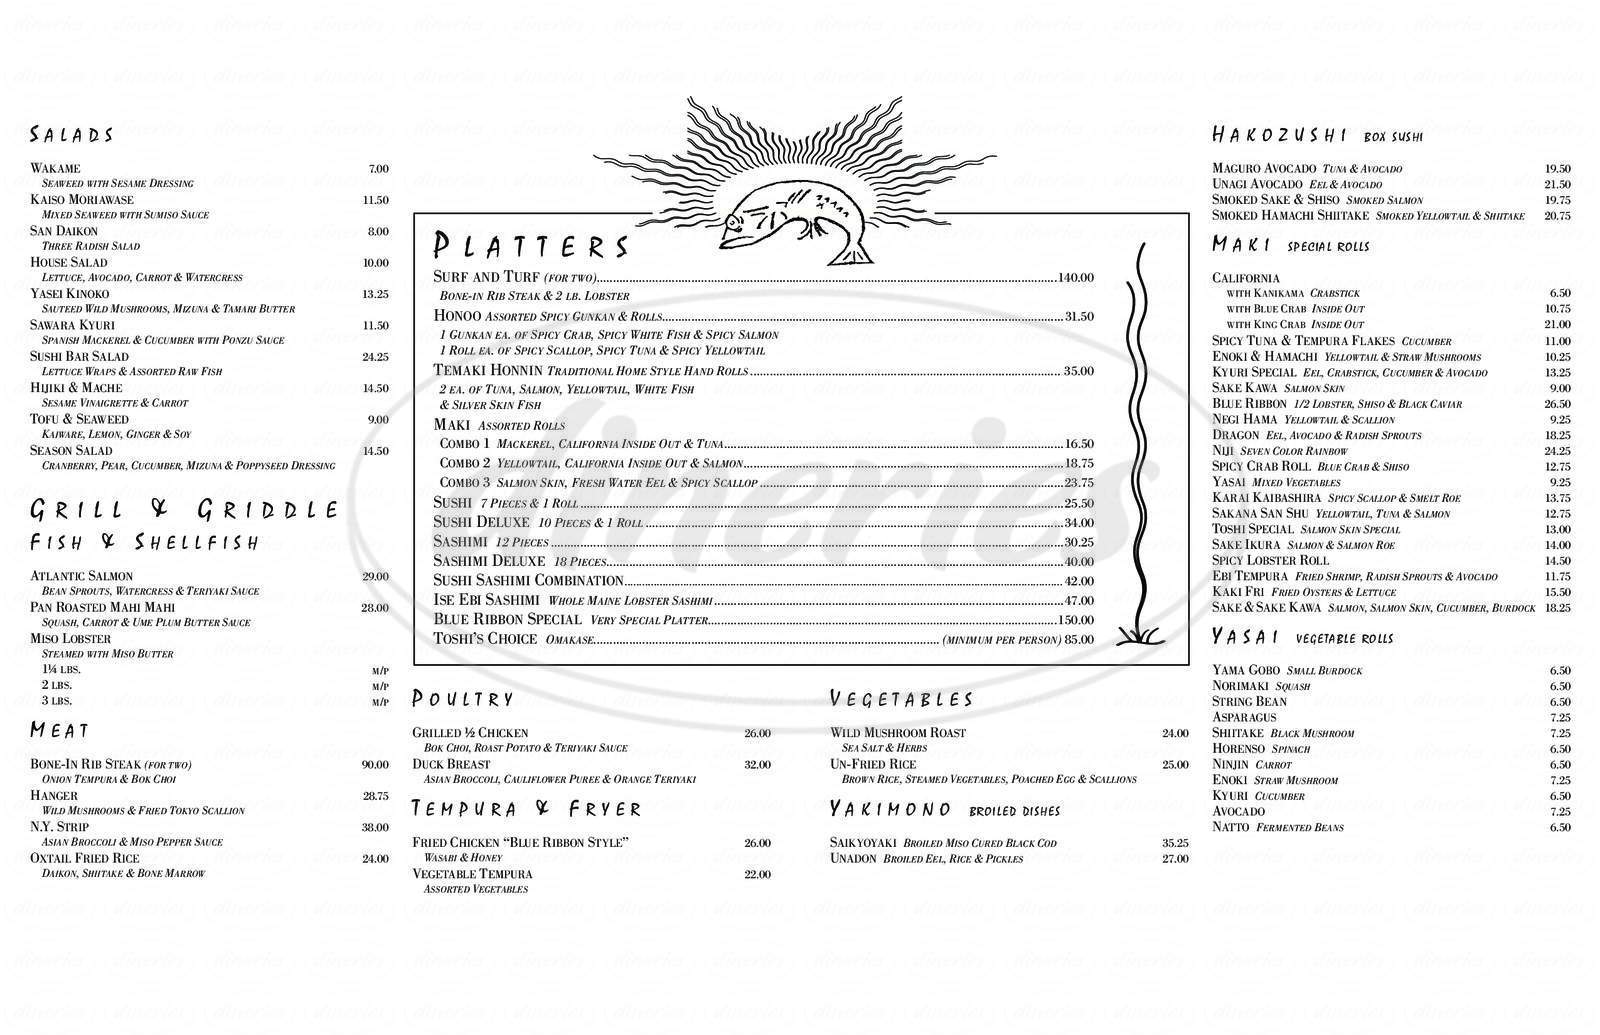 menu for Blue Ribbon Sushi Bar & Grill